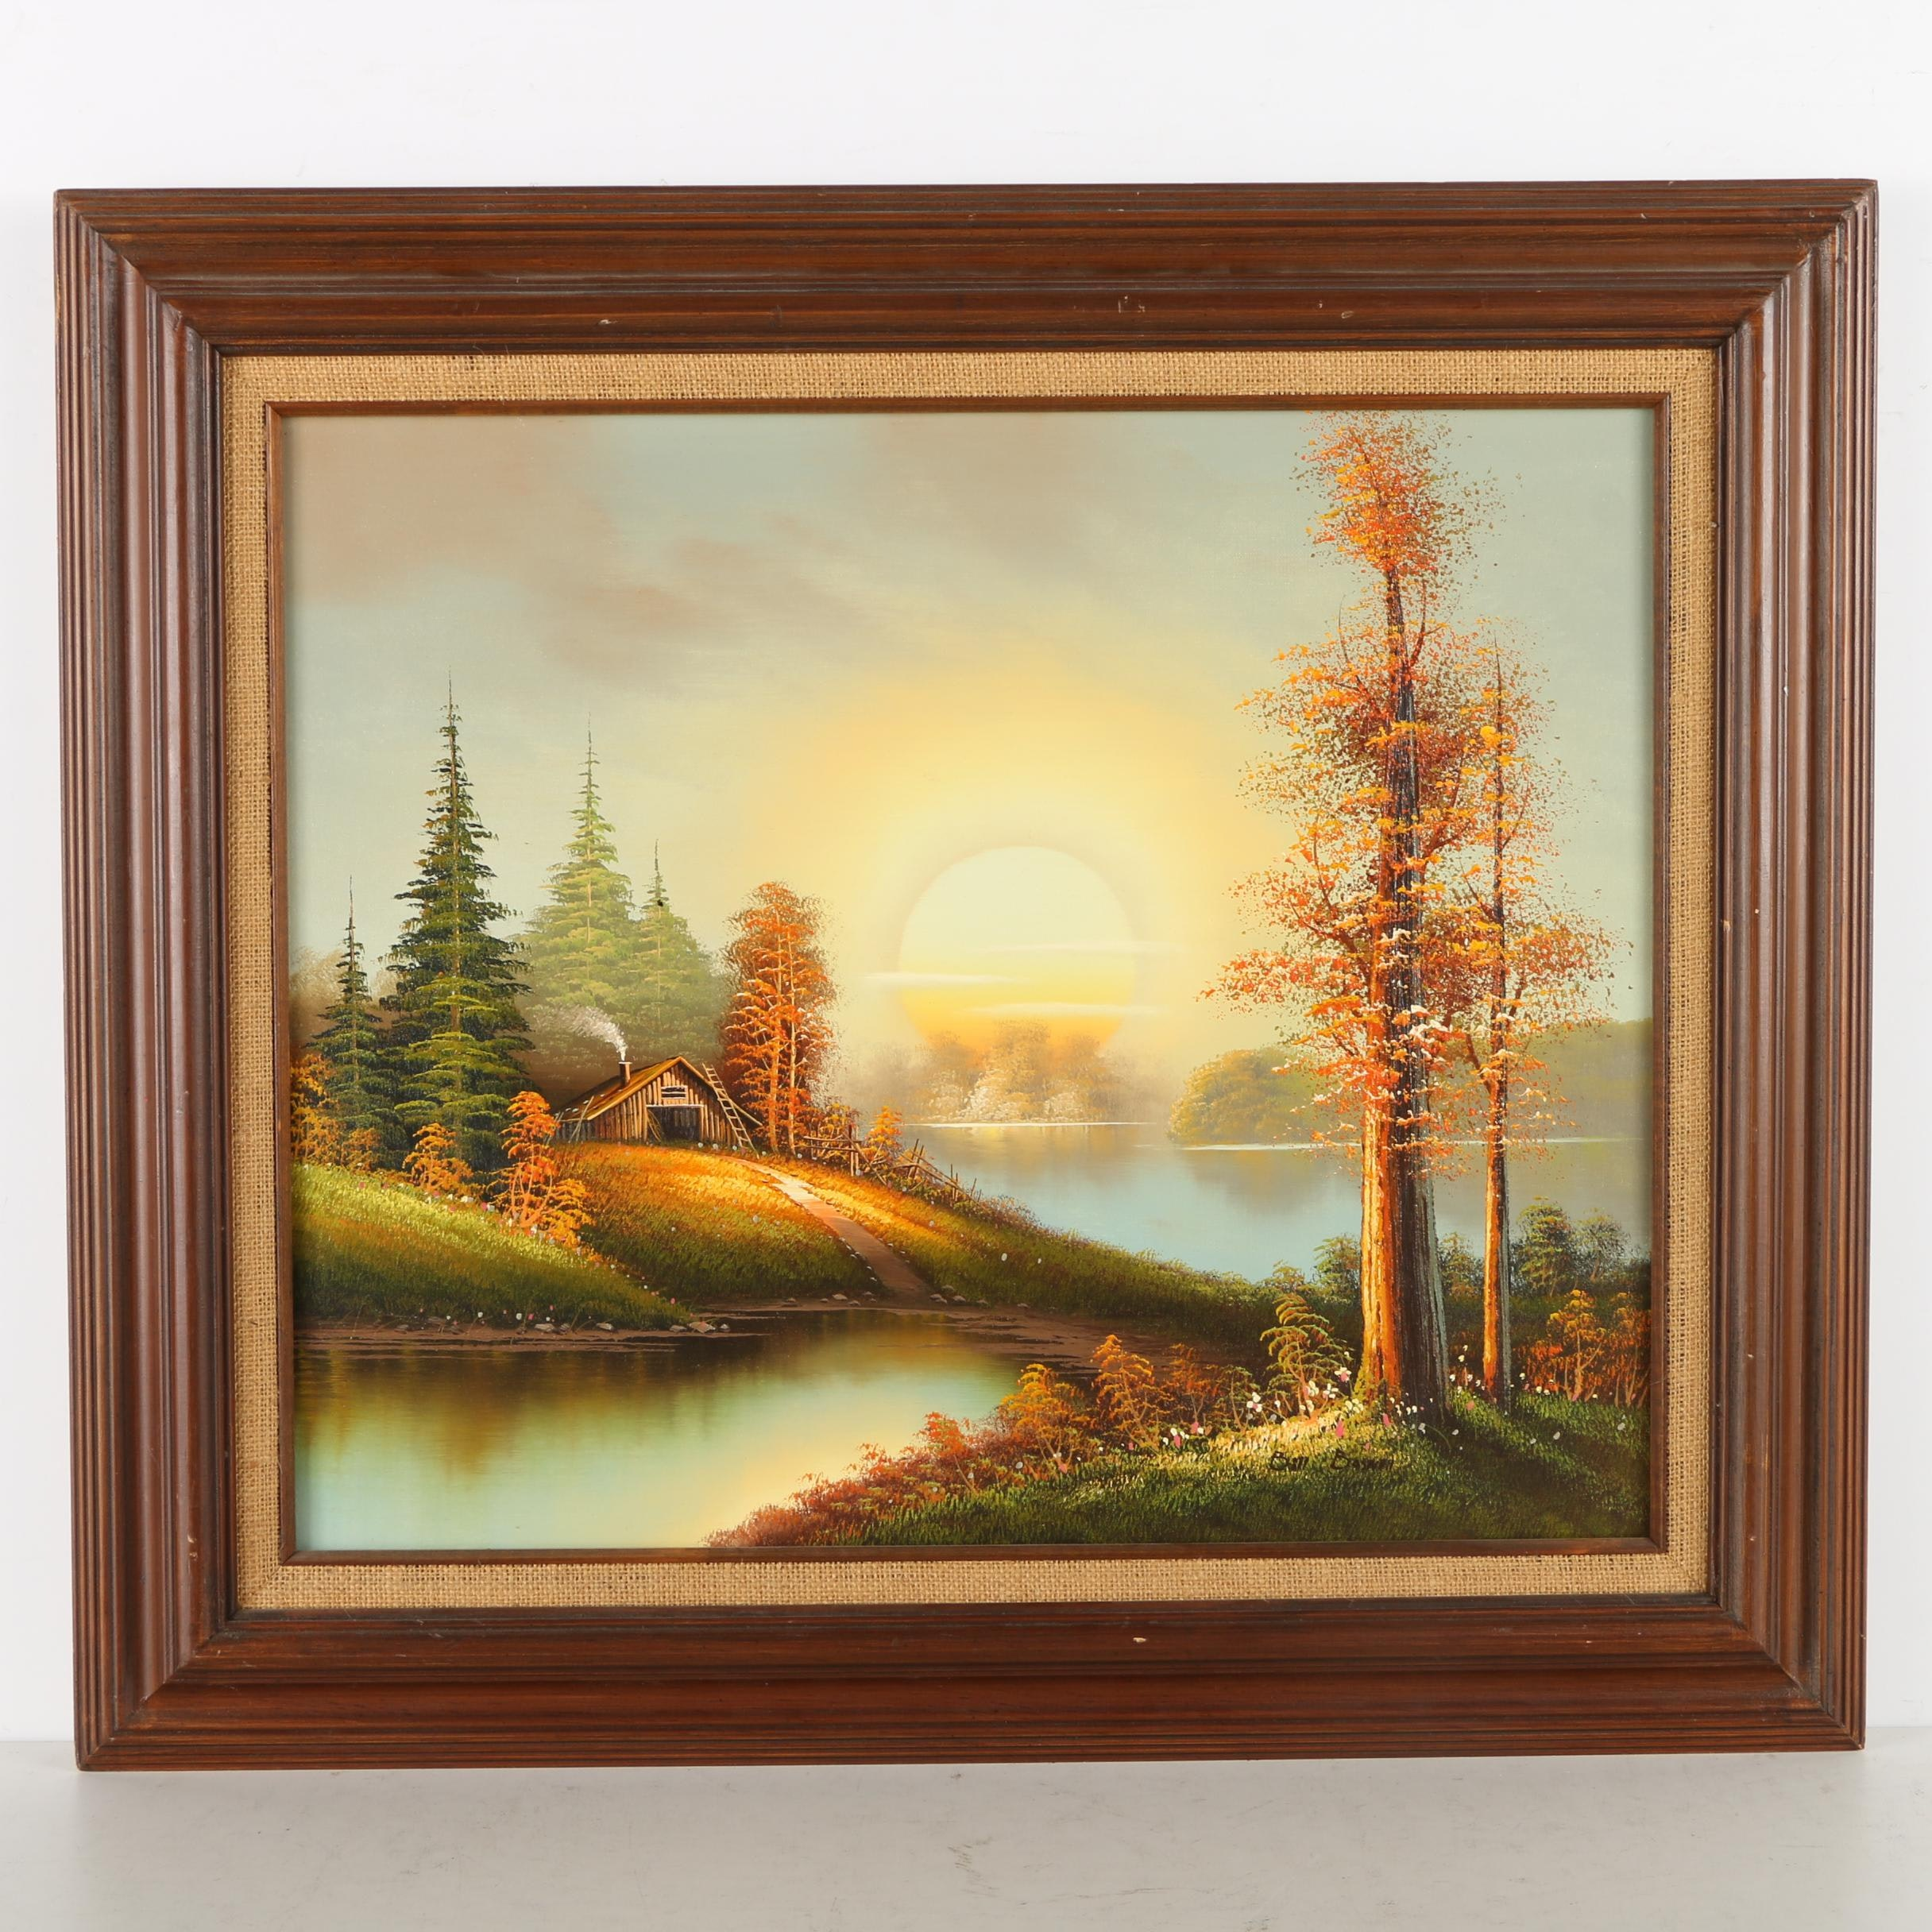 Bill Boswell Oil Painting of a Cabin at Sunrise